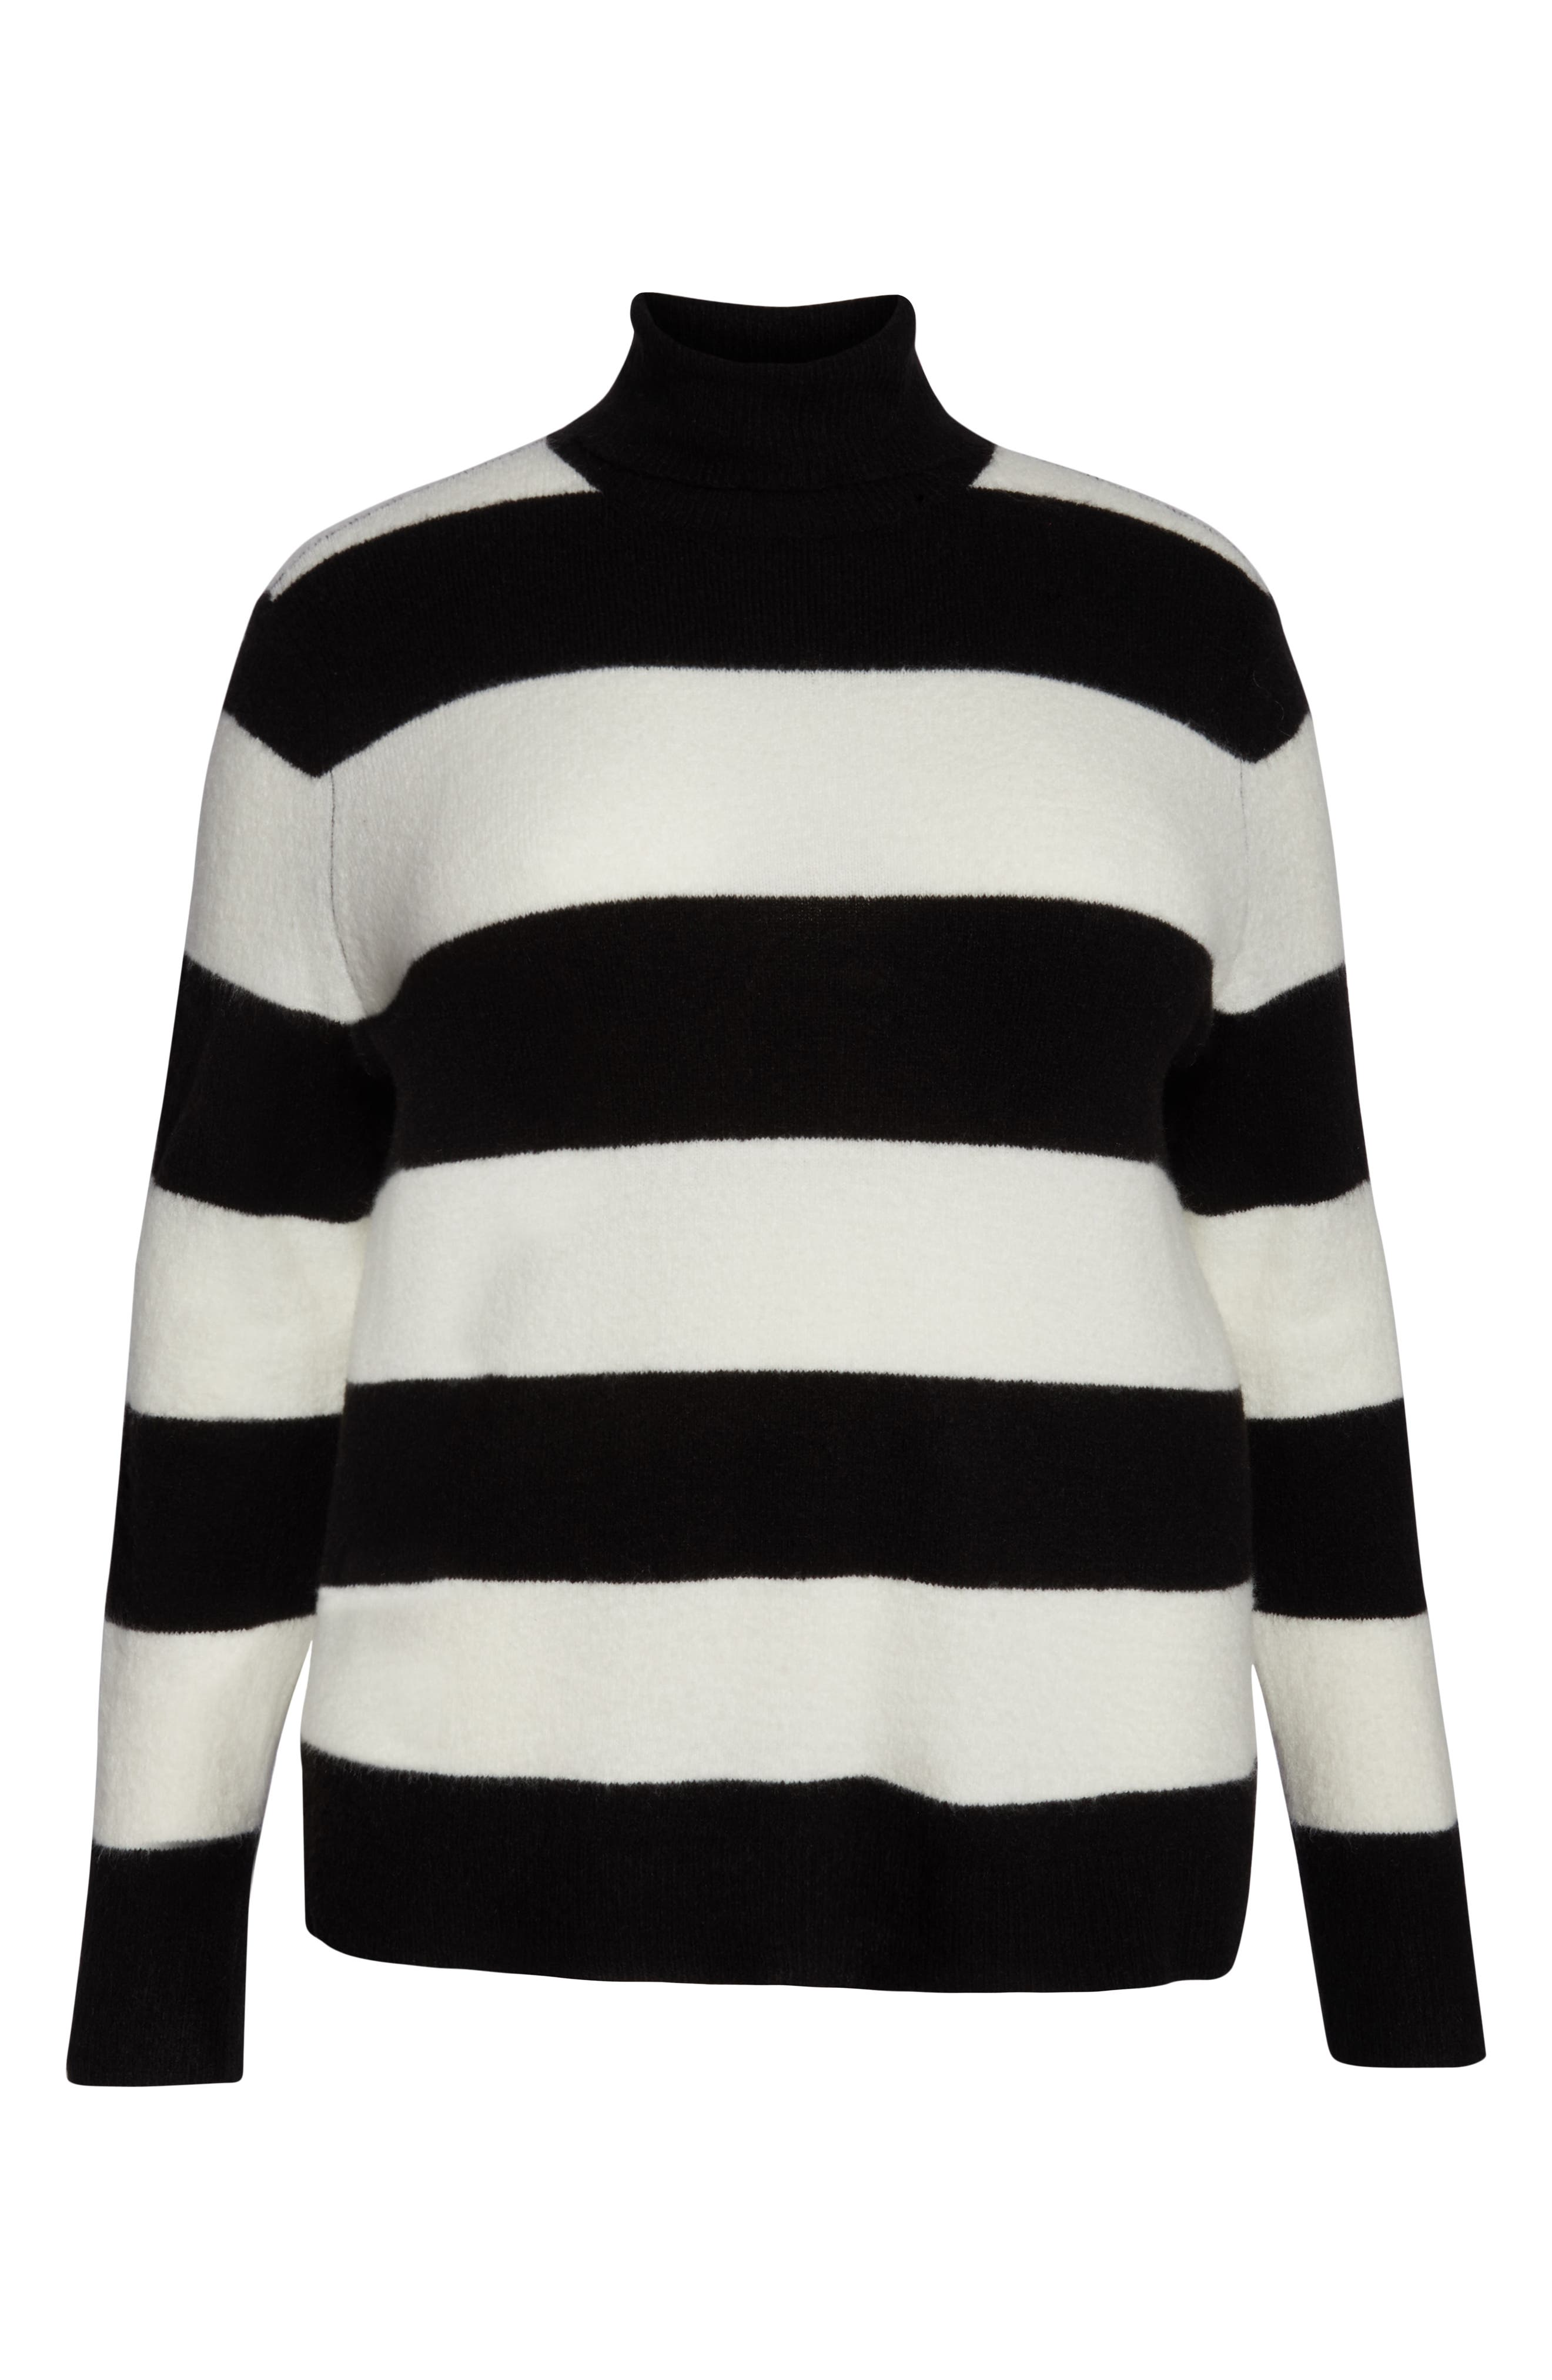 x Atlantic-Pacific Stripe Turtleneck Sweater,                             Alternate thumbnail 6, color,                             BLACK- IVORY STRIPE